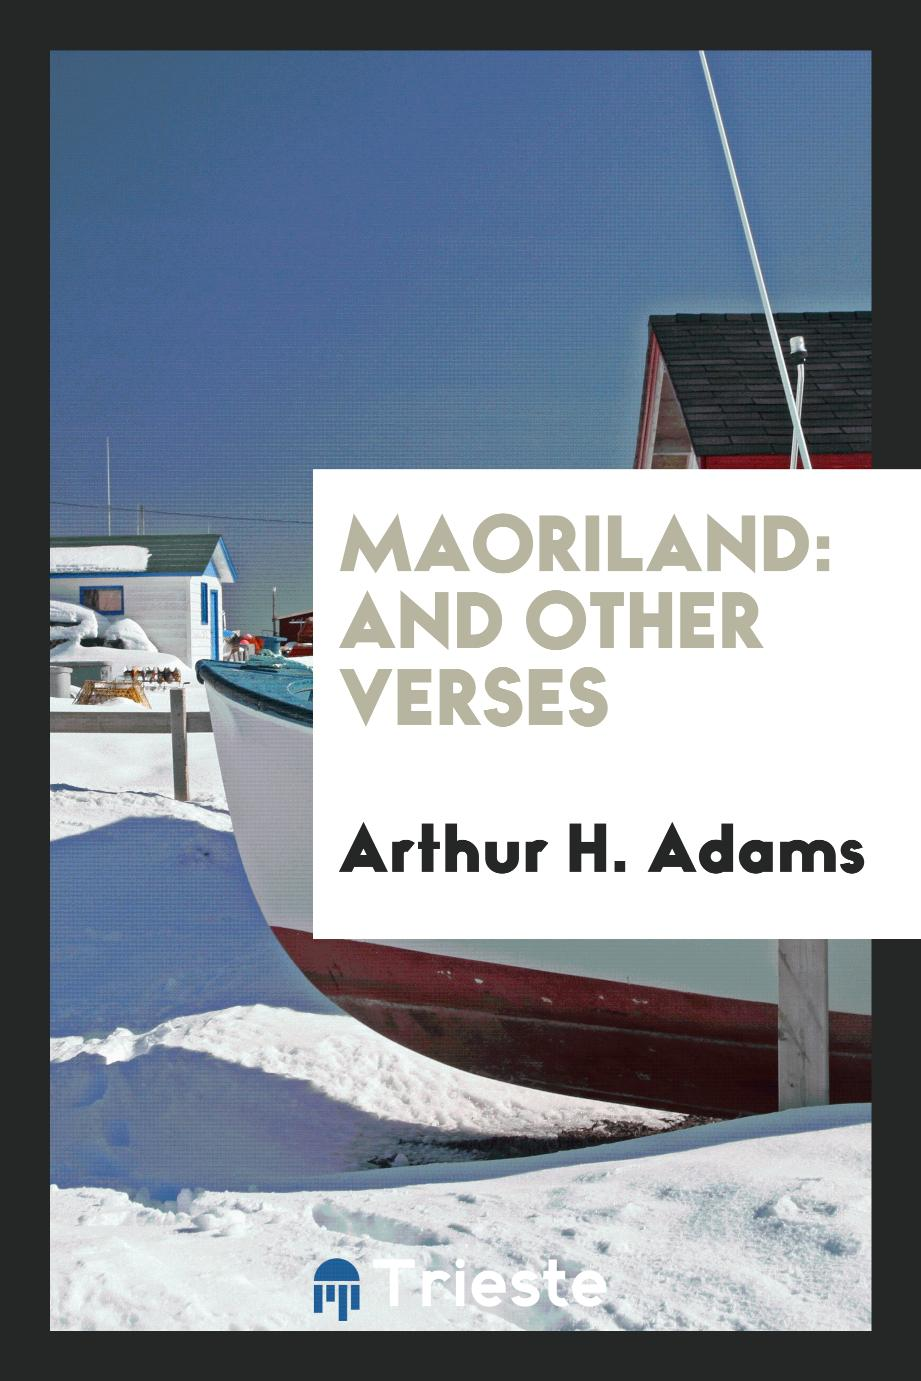 Maoriland: And Other Verses